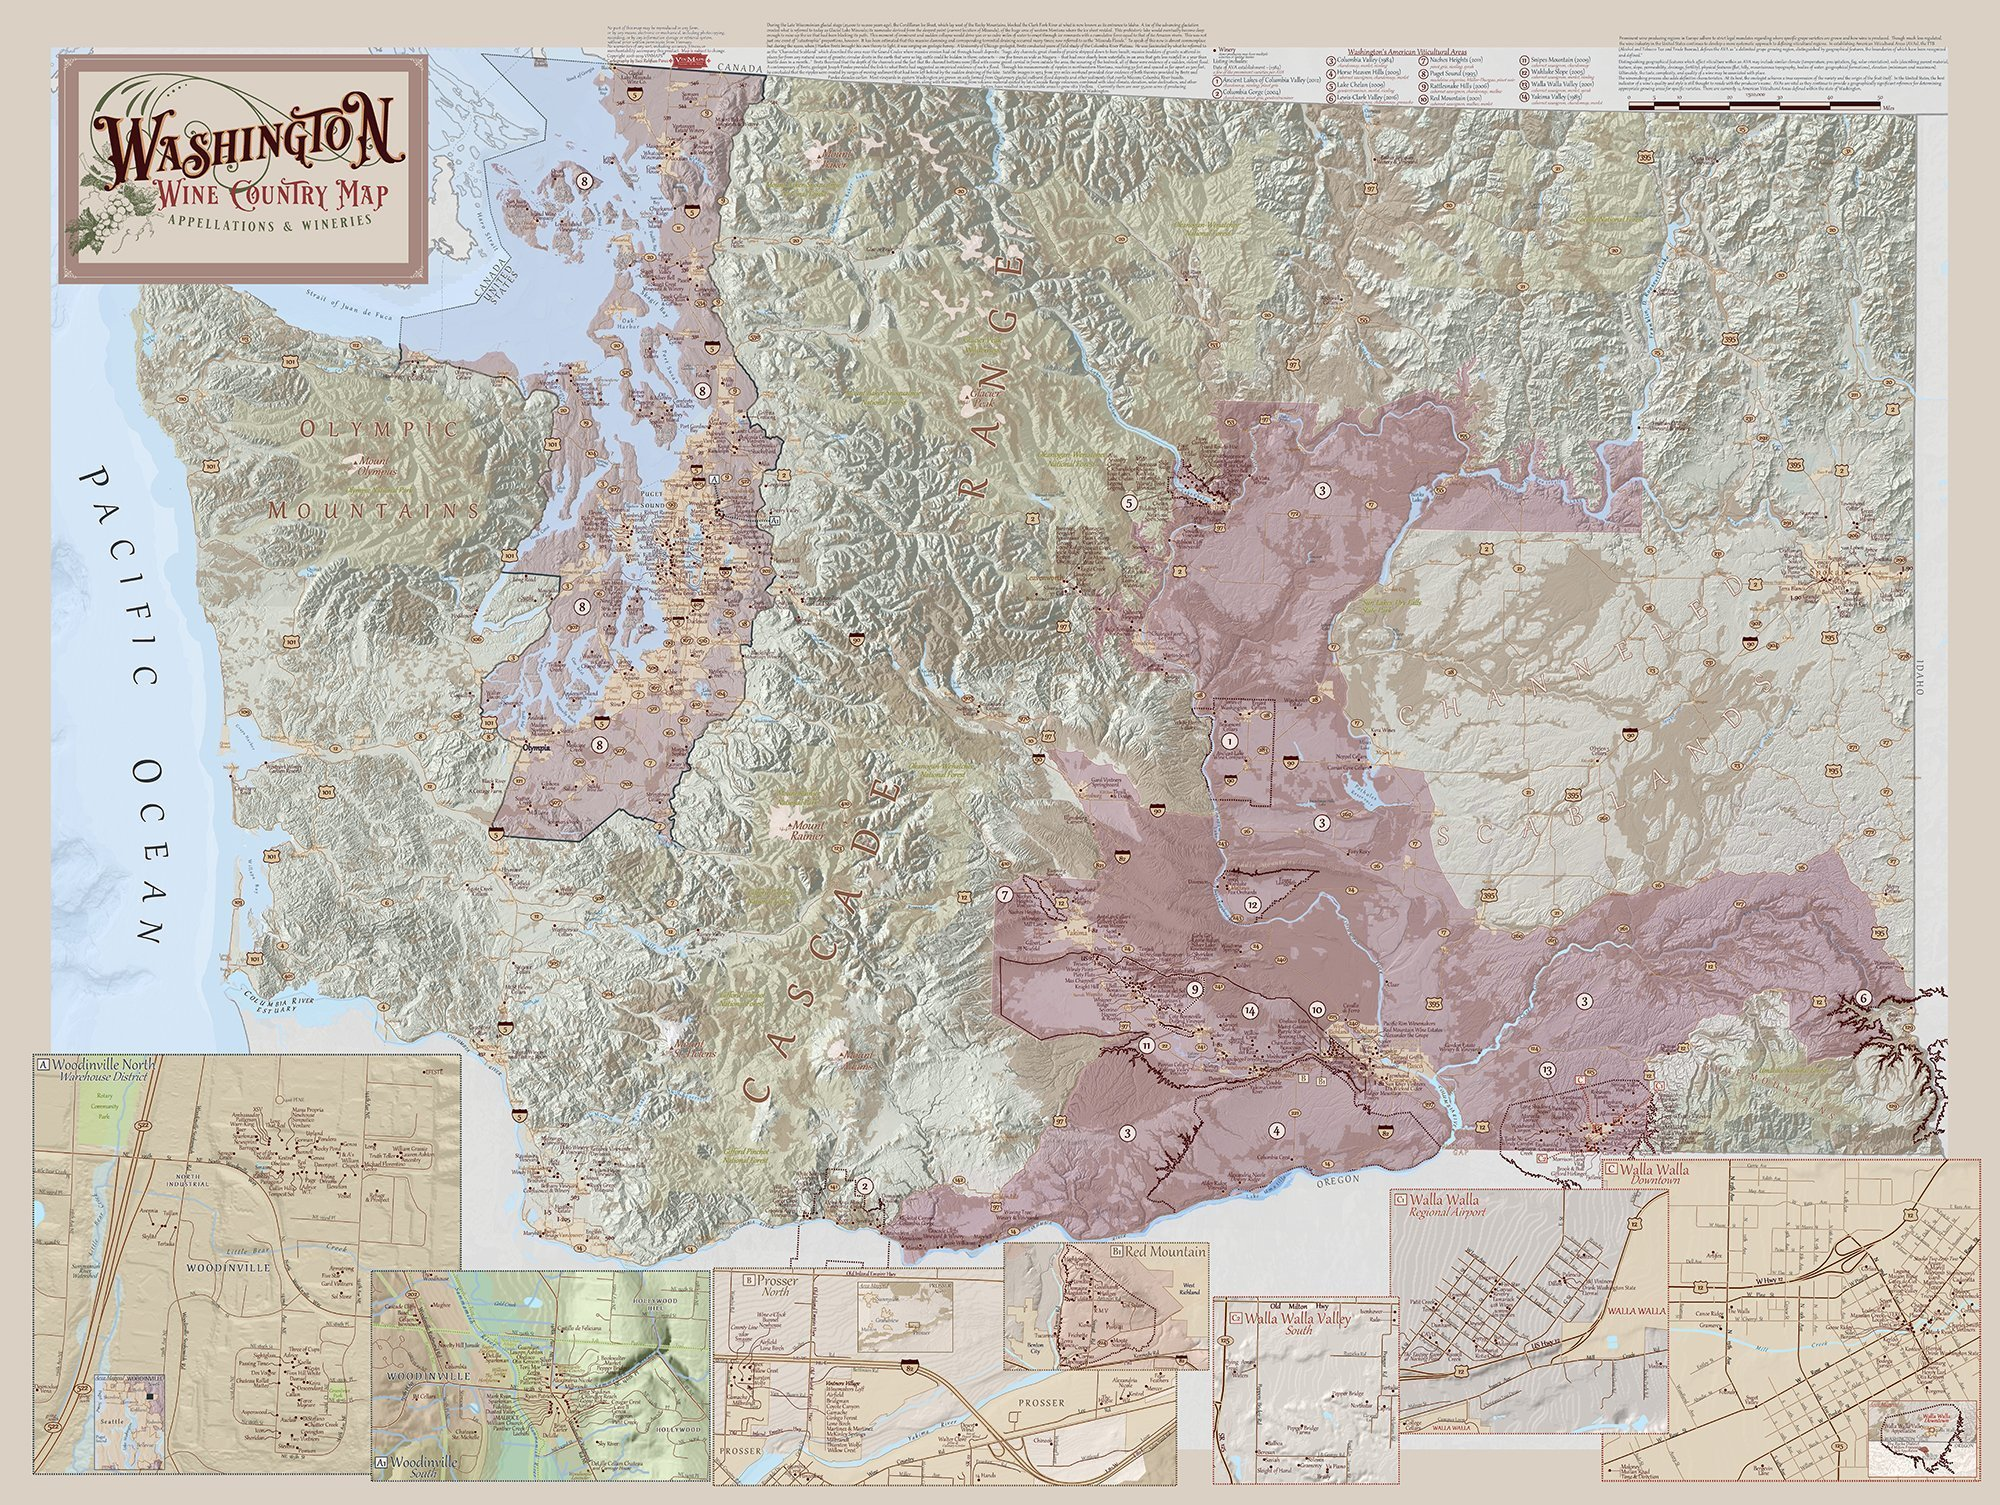 graphic relating to Printable Maps of Washington State titled Washington Place Wine Parts Map Fourth Version